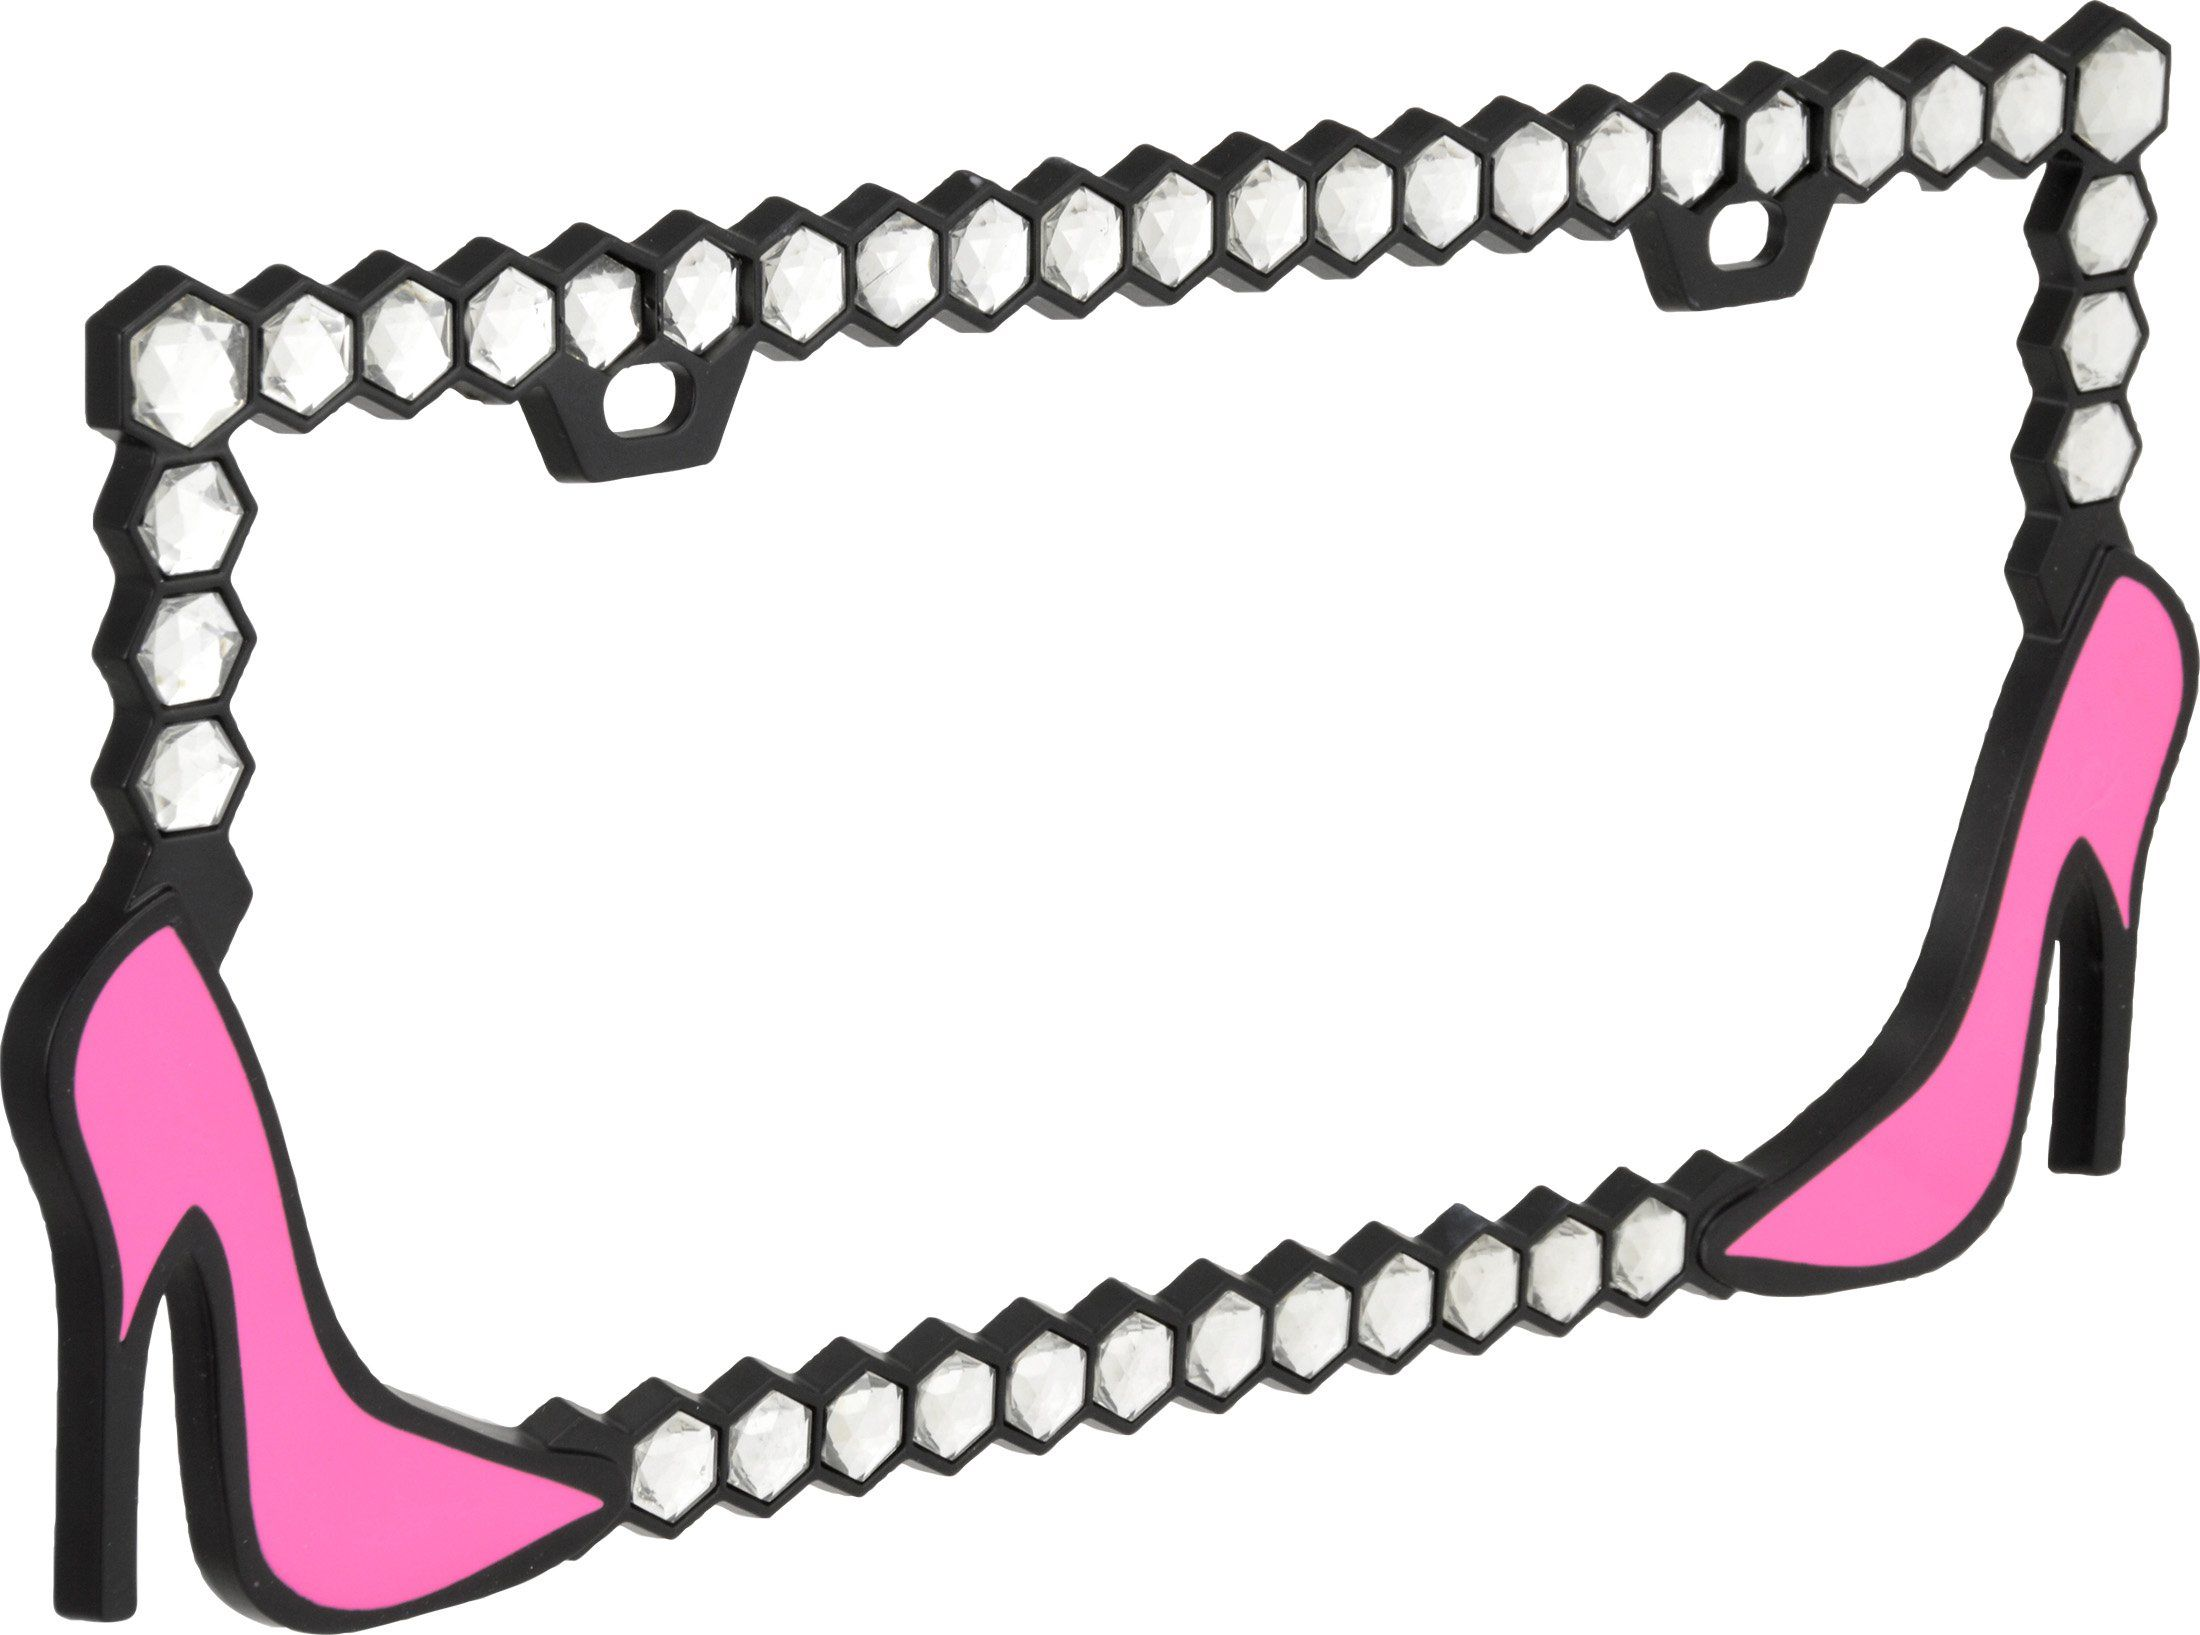 Bell automotive hot pink high heels license plate frame